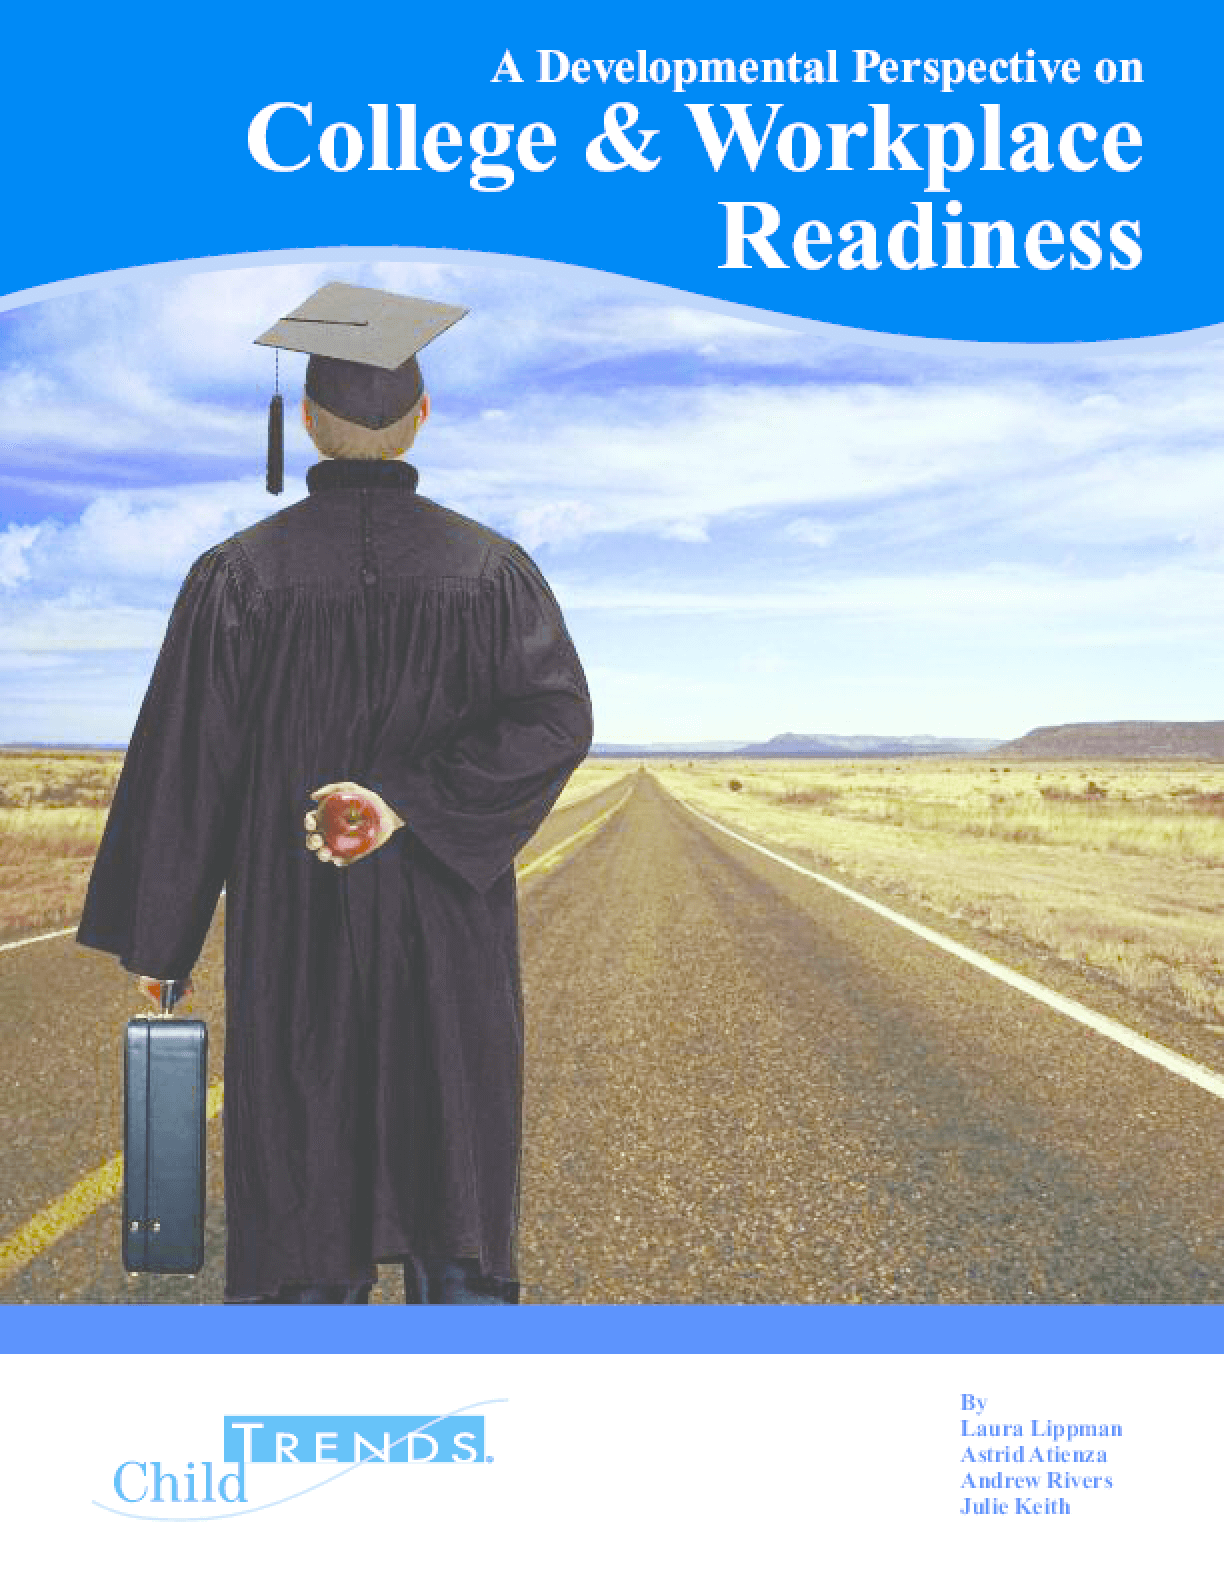 A Developmental Perspective on College & Workplace Readiness